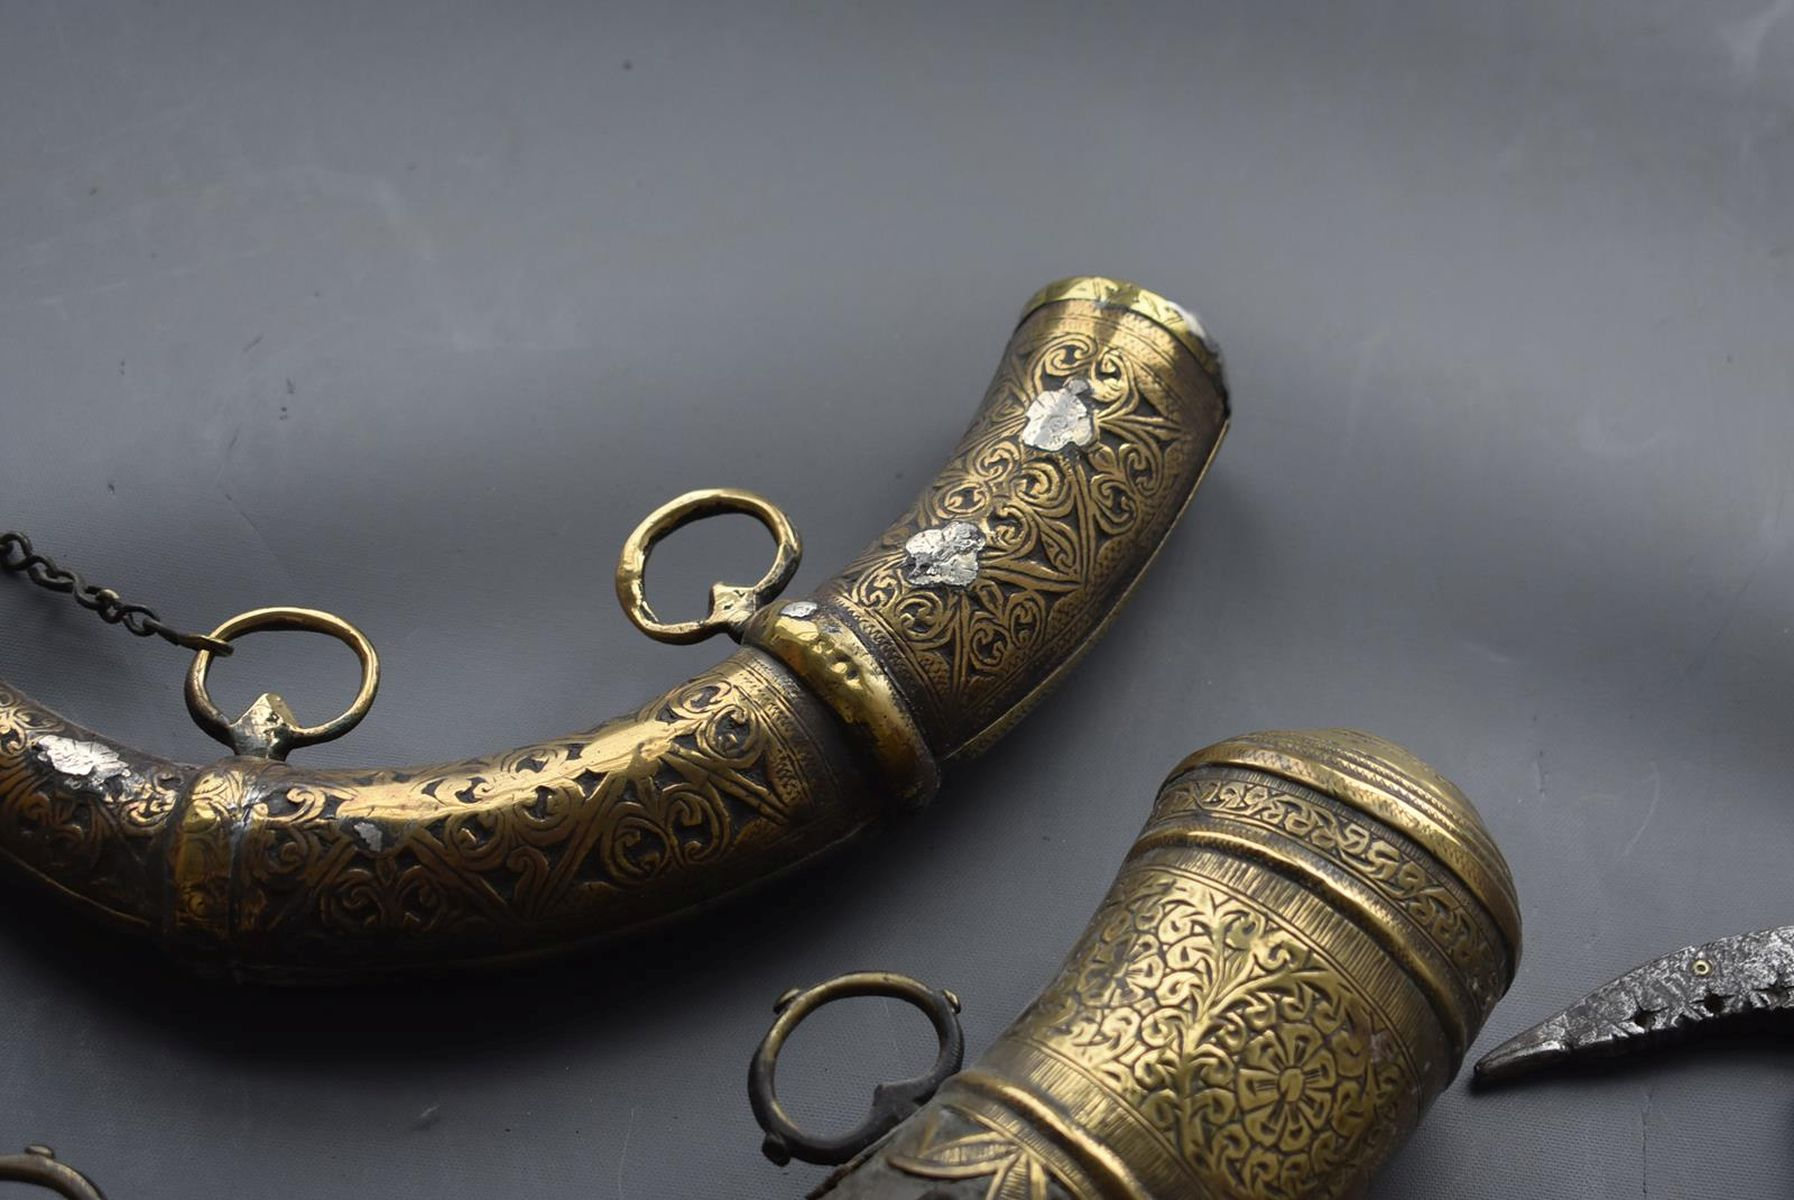 THREE VARIOUS NORTH AFRICAN POWDER HORNS, each of natural curving form with ornate brass mounts, - Image 5 of 11